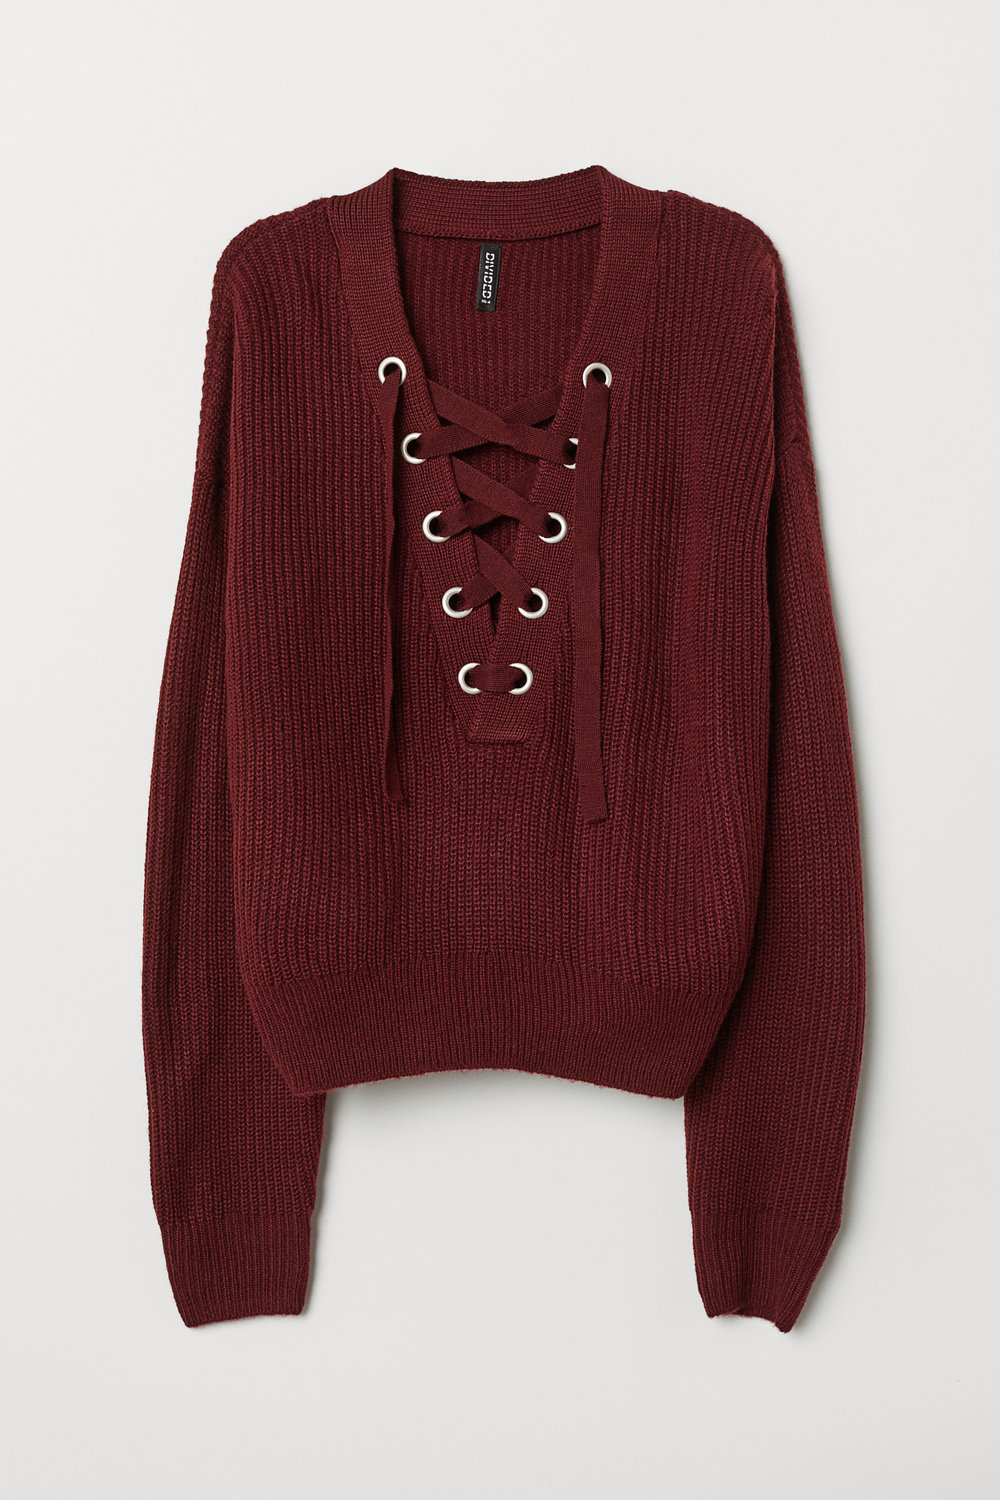 H&M: Knit Sweater with Lacing - $30